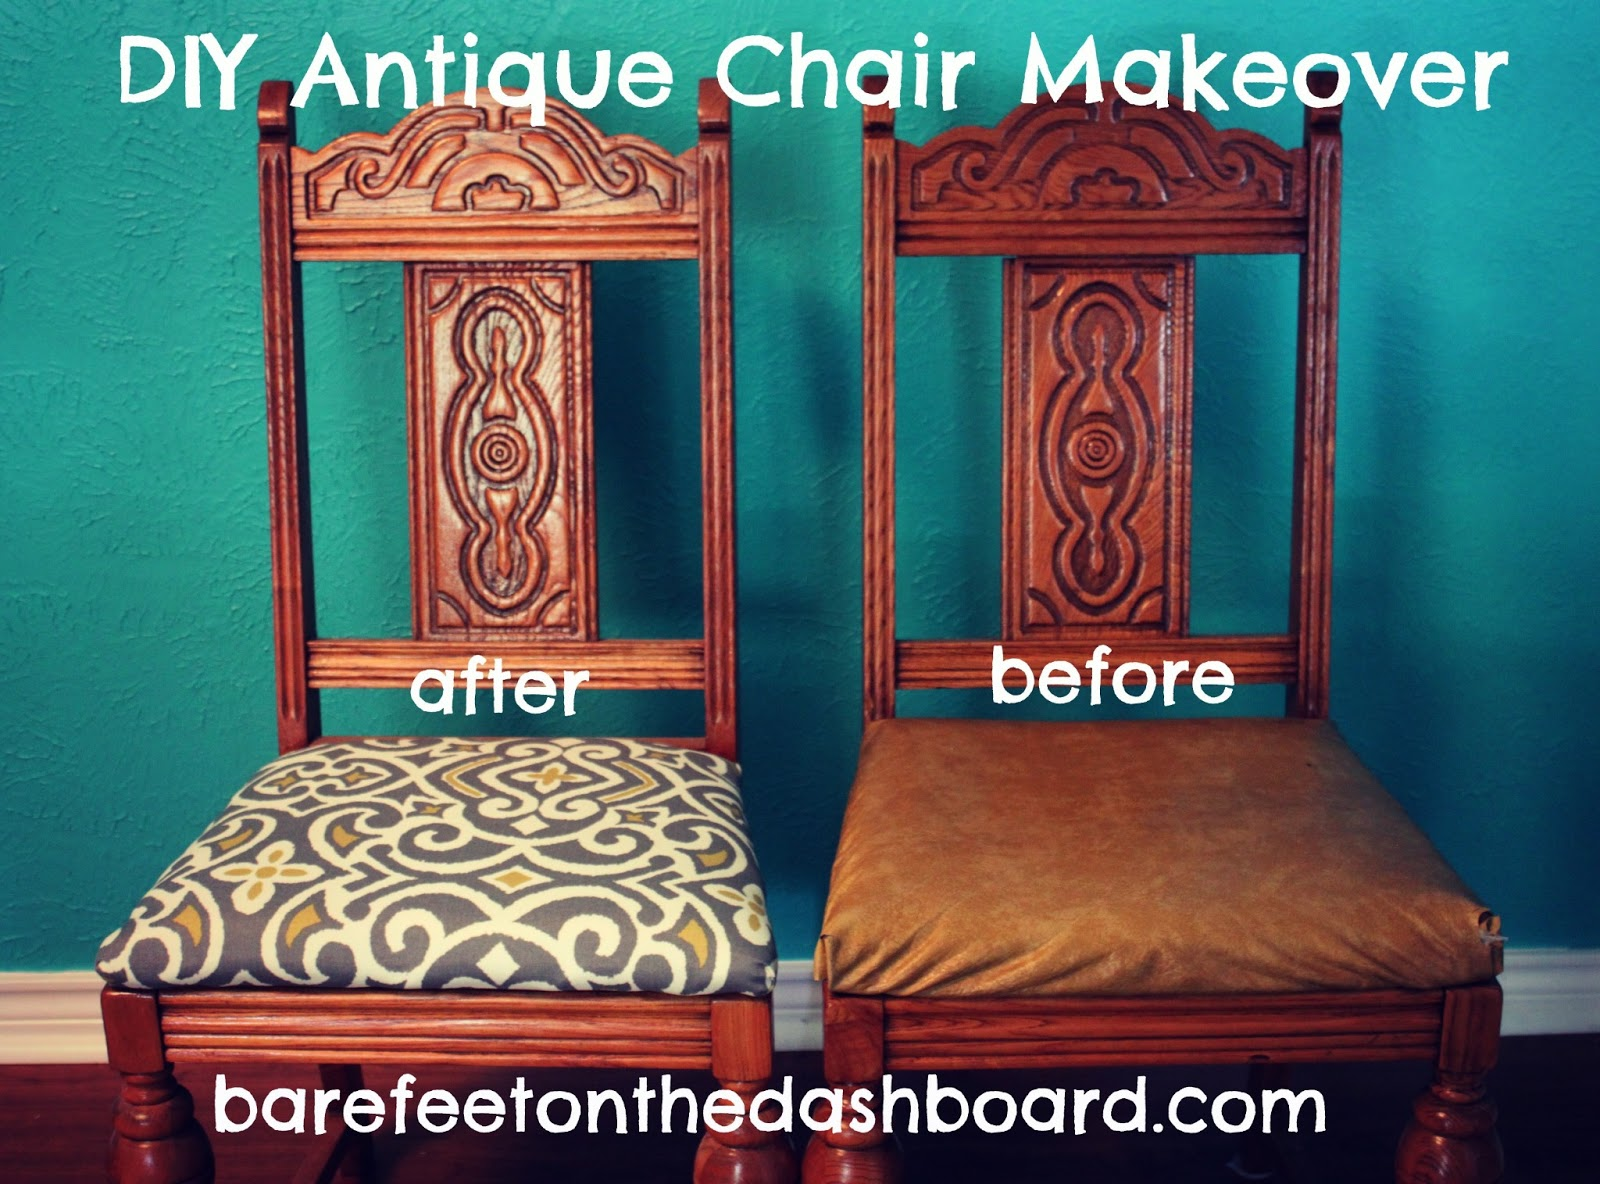 Duck Creek DIY Antique Dining Room Chair Makeover